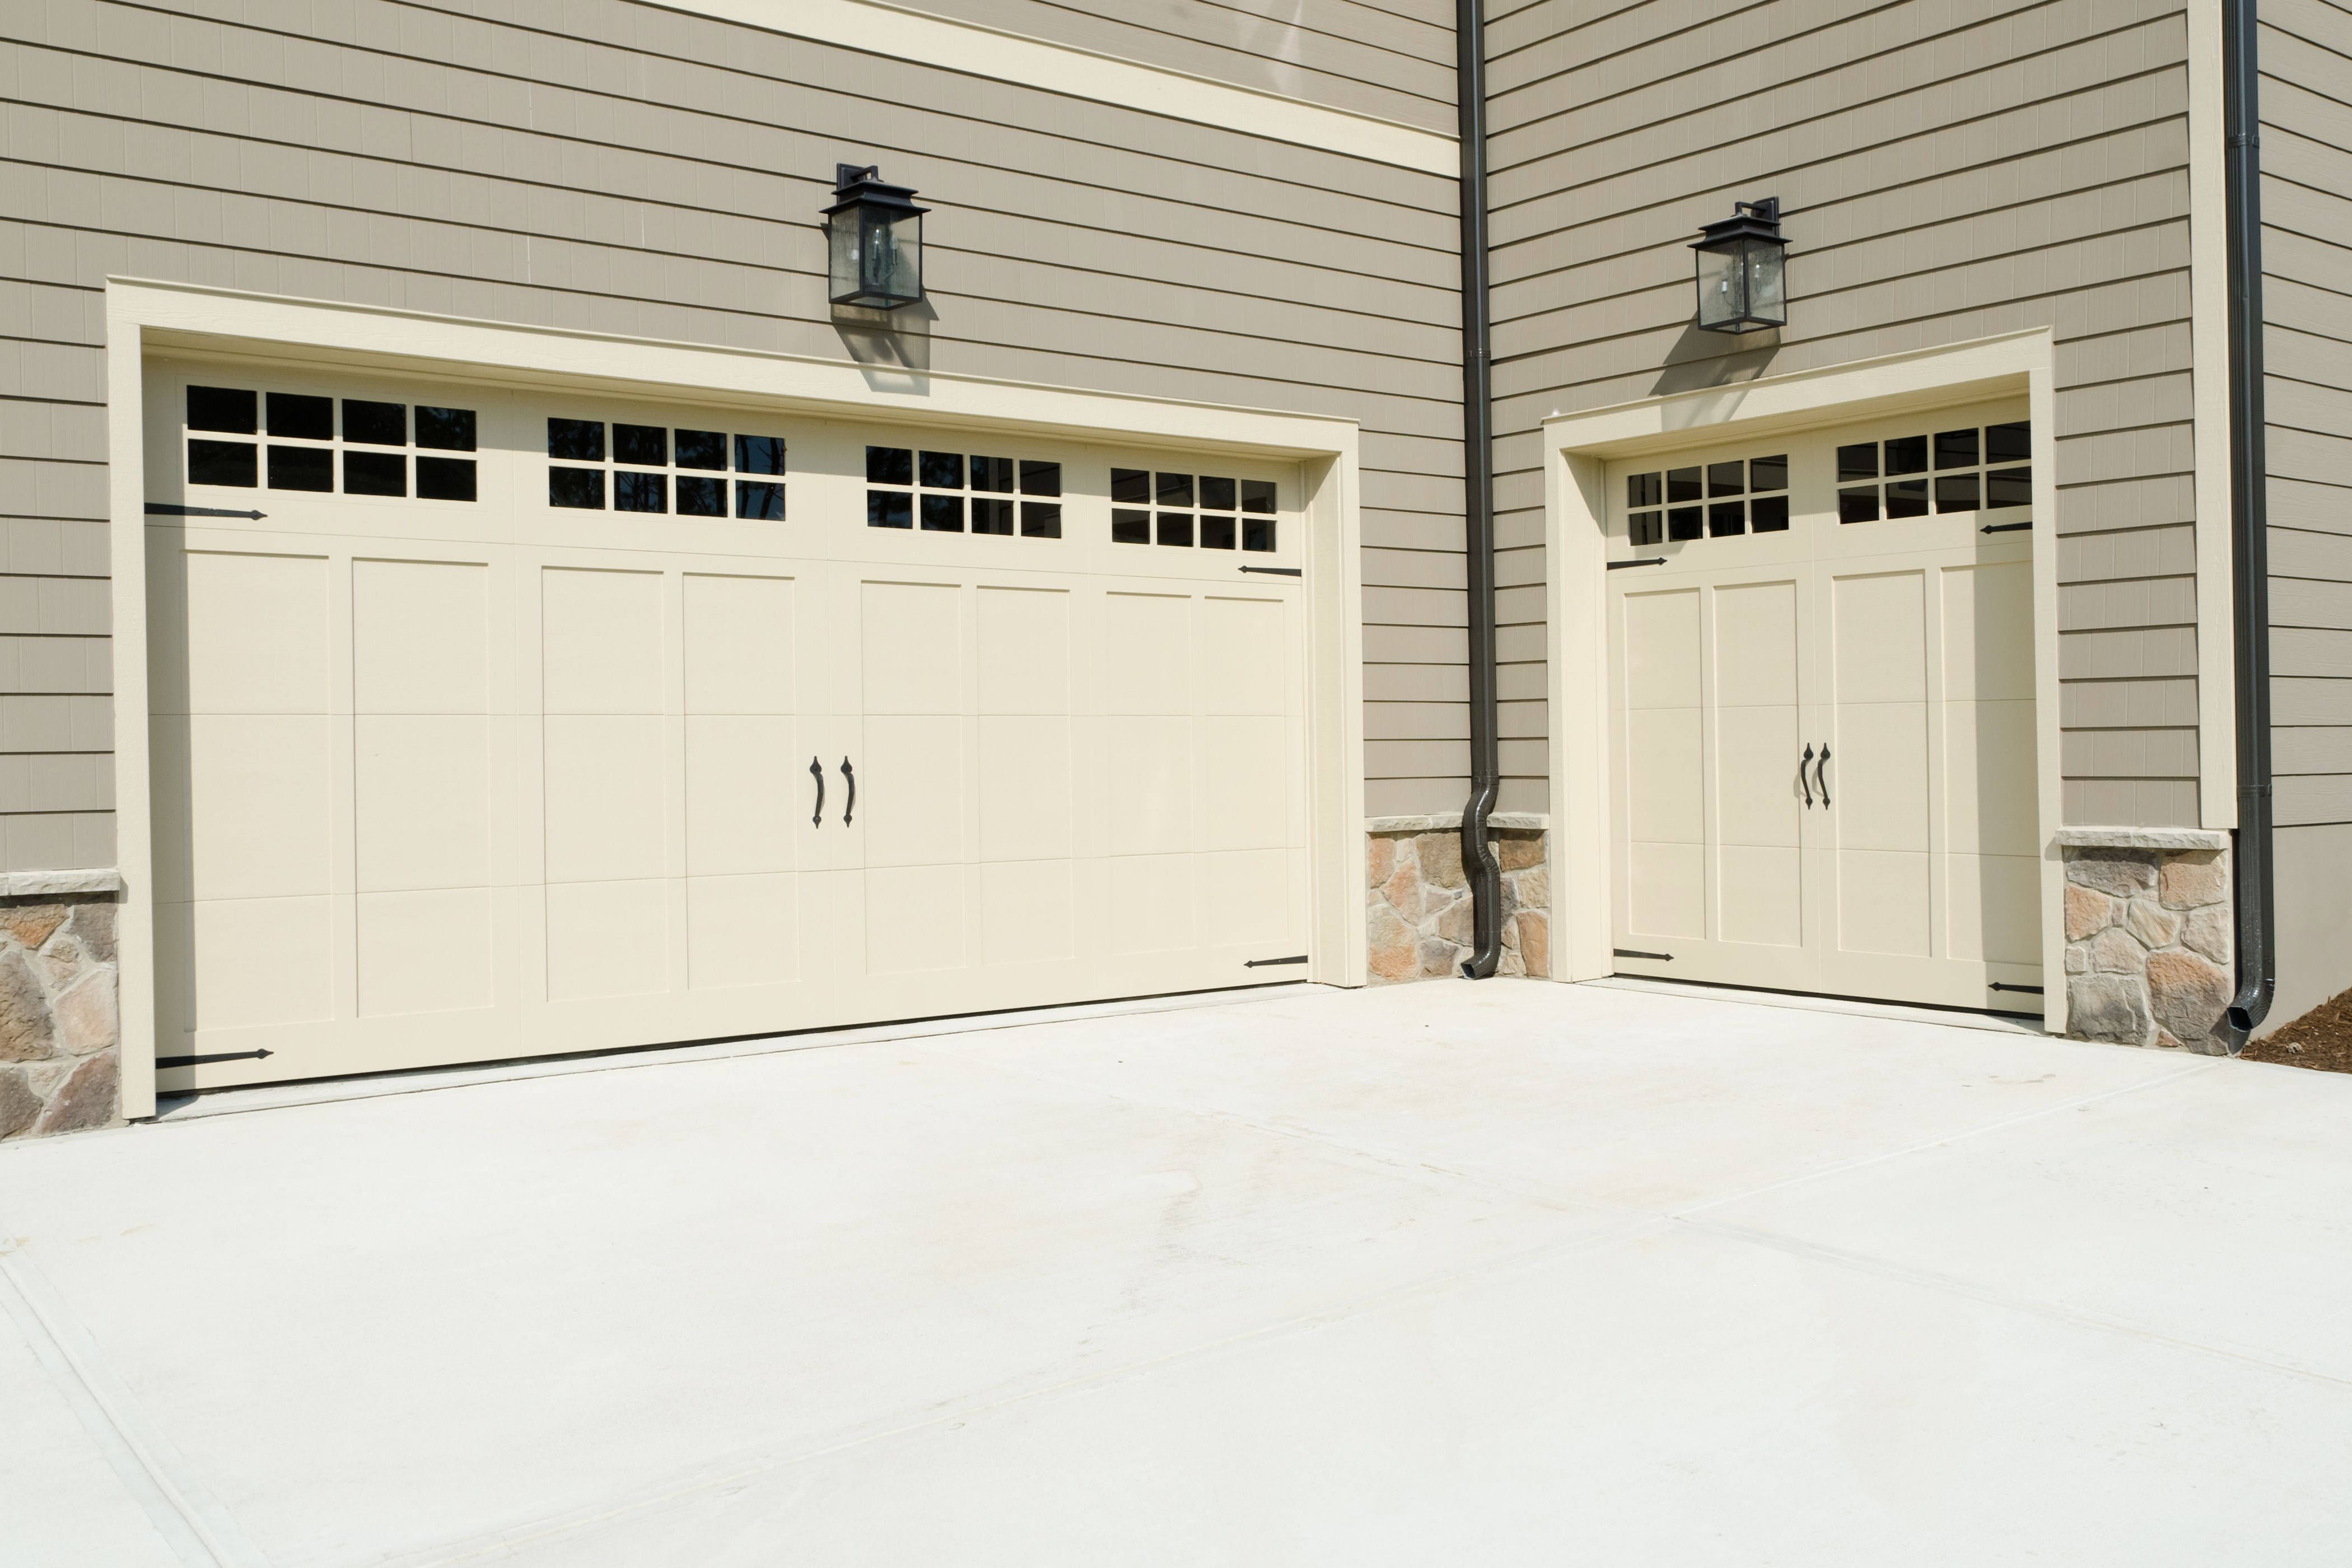 We Offer Same Day Services For Several Repairs Including Jammed Garage Door Damaged Or Worn Garage Door Springs Garage Door Repair Service Garage Door Repair